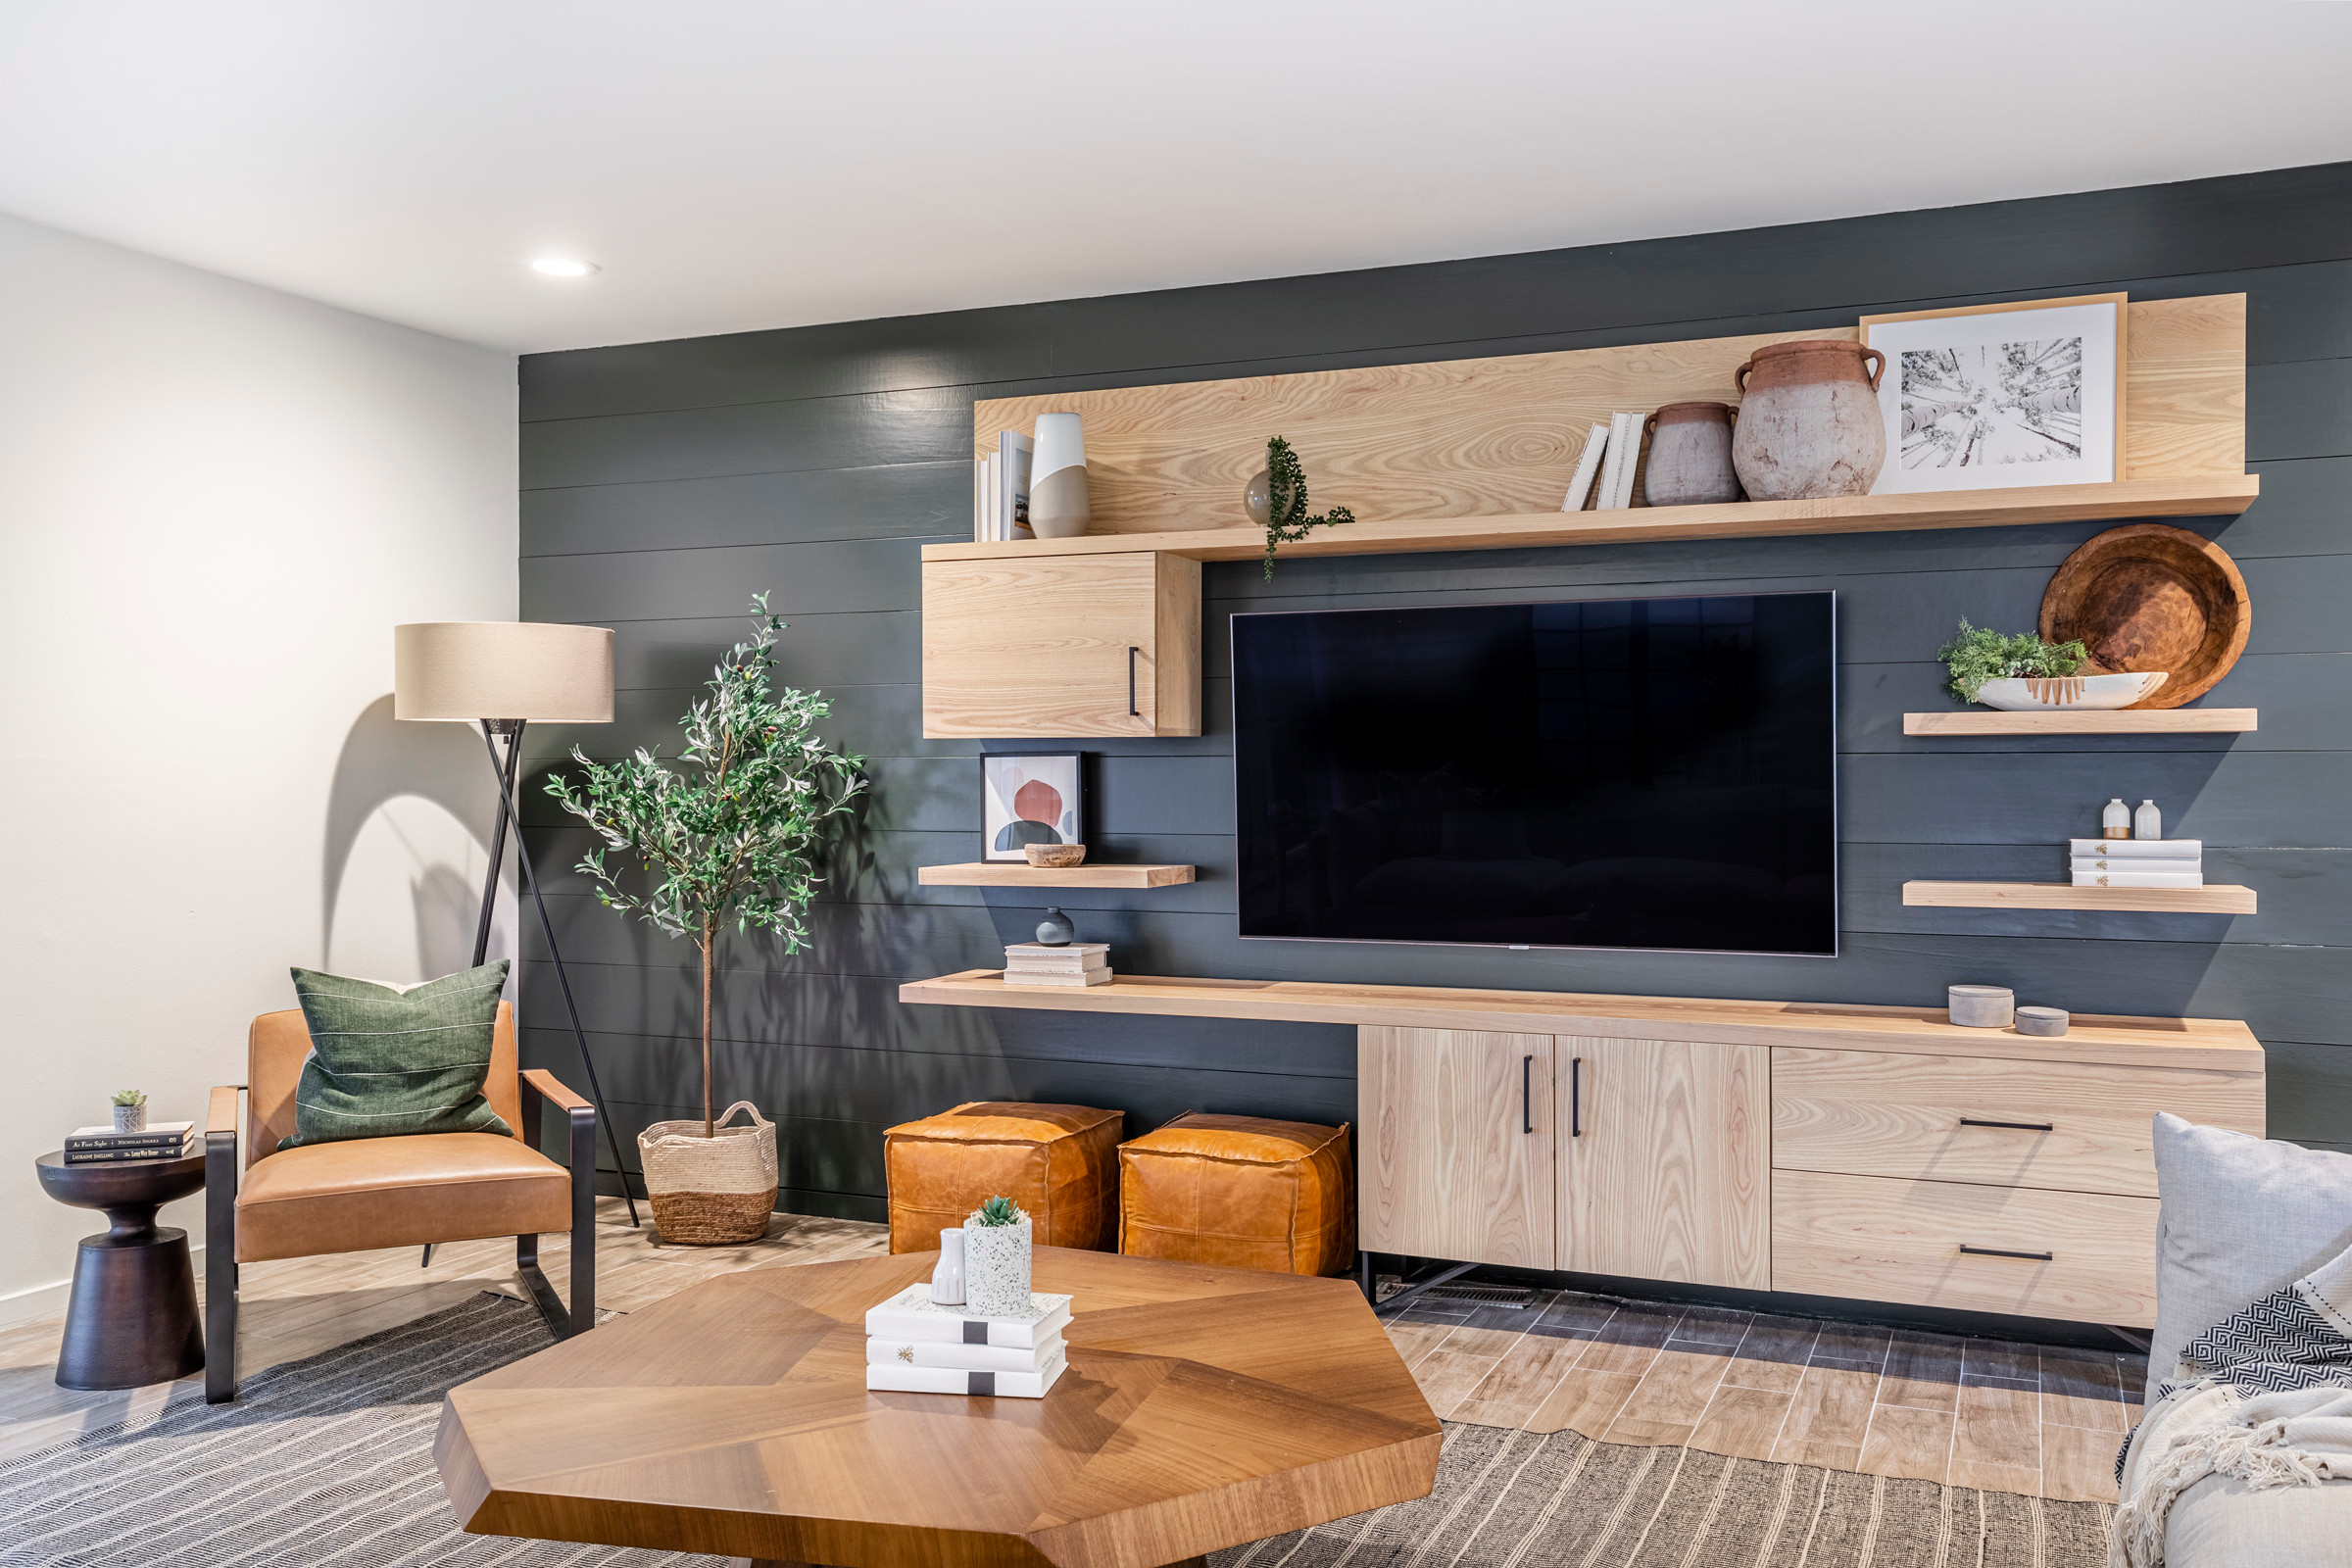 75 Beautiful Shiplap Wall Family Room Pictures Ideas March 2021 Houzz